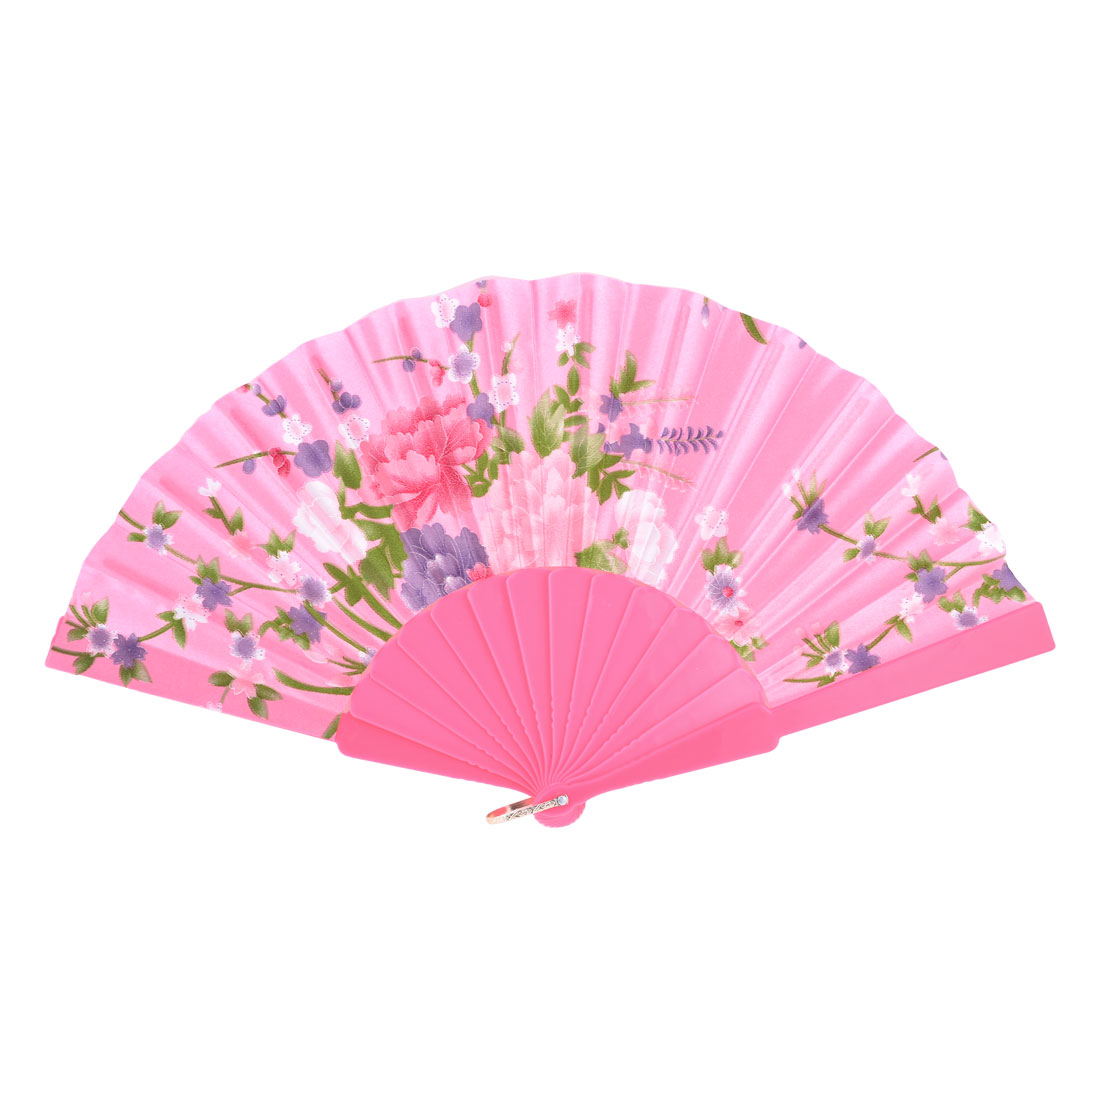 Peony Print Folding Hand Shaking Fan Pink Green for Dancing